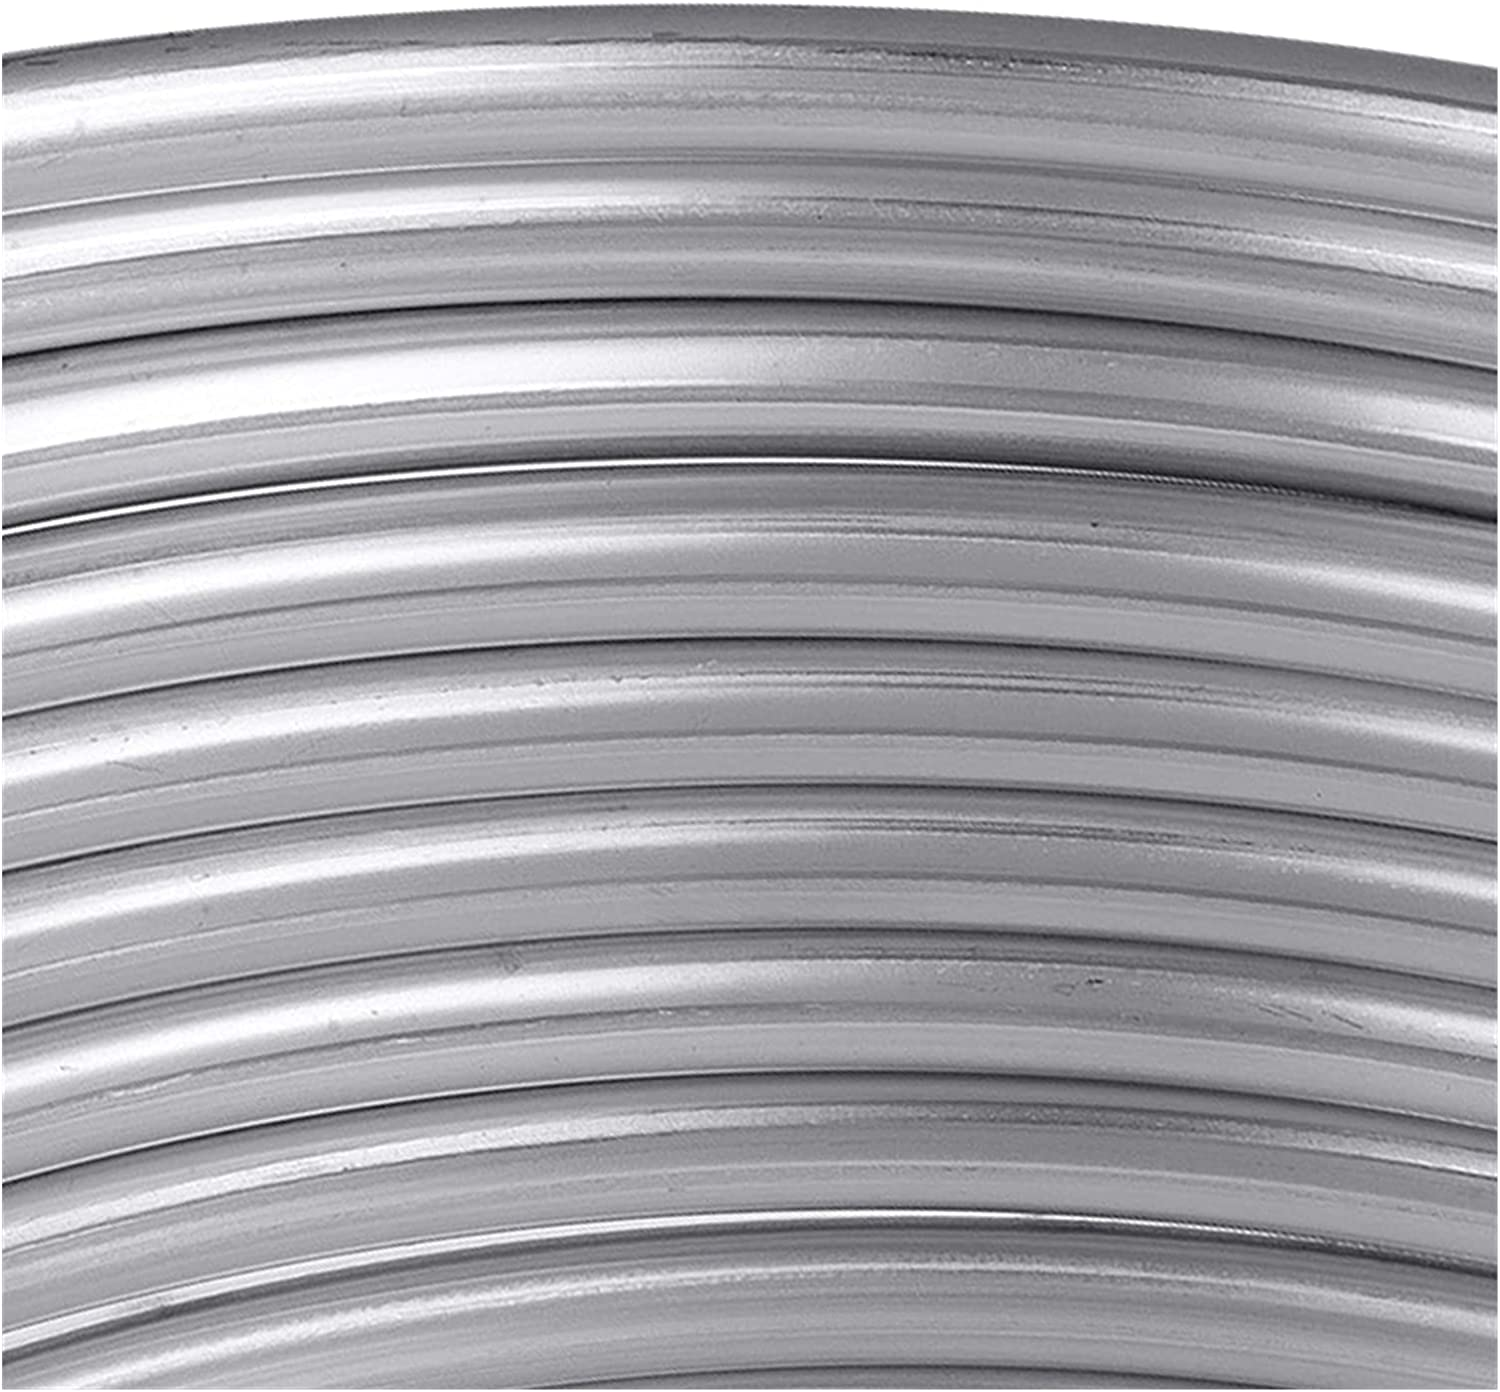 Beer Limited Credence Special Price Brewing 5 Sizes Home Part Steel Stainless Immersion